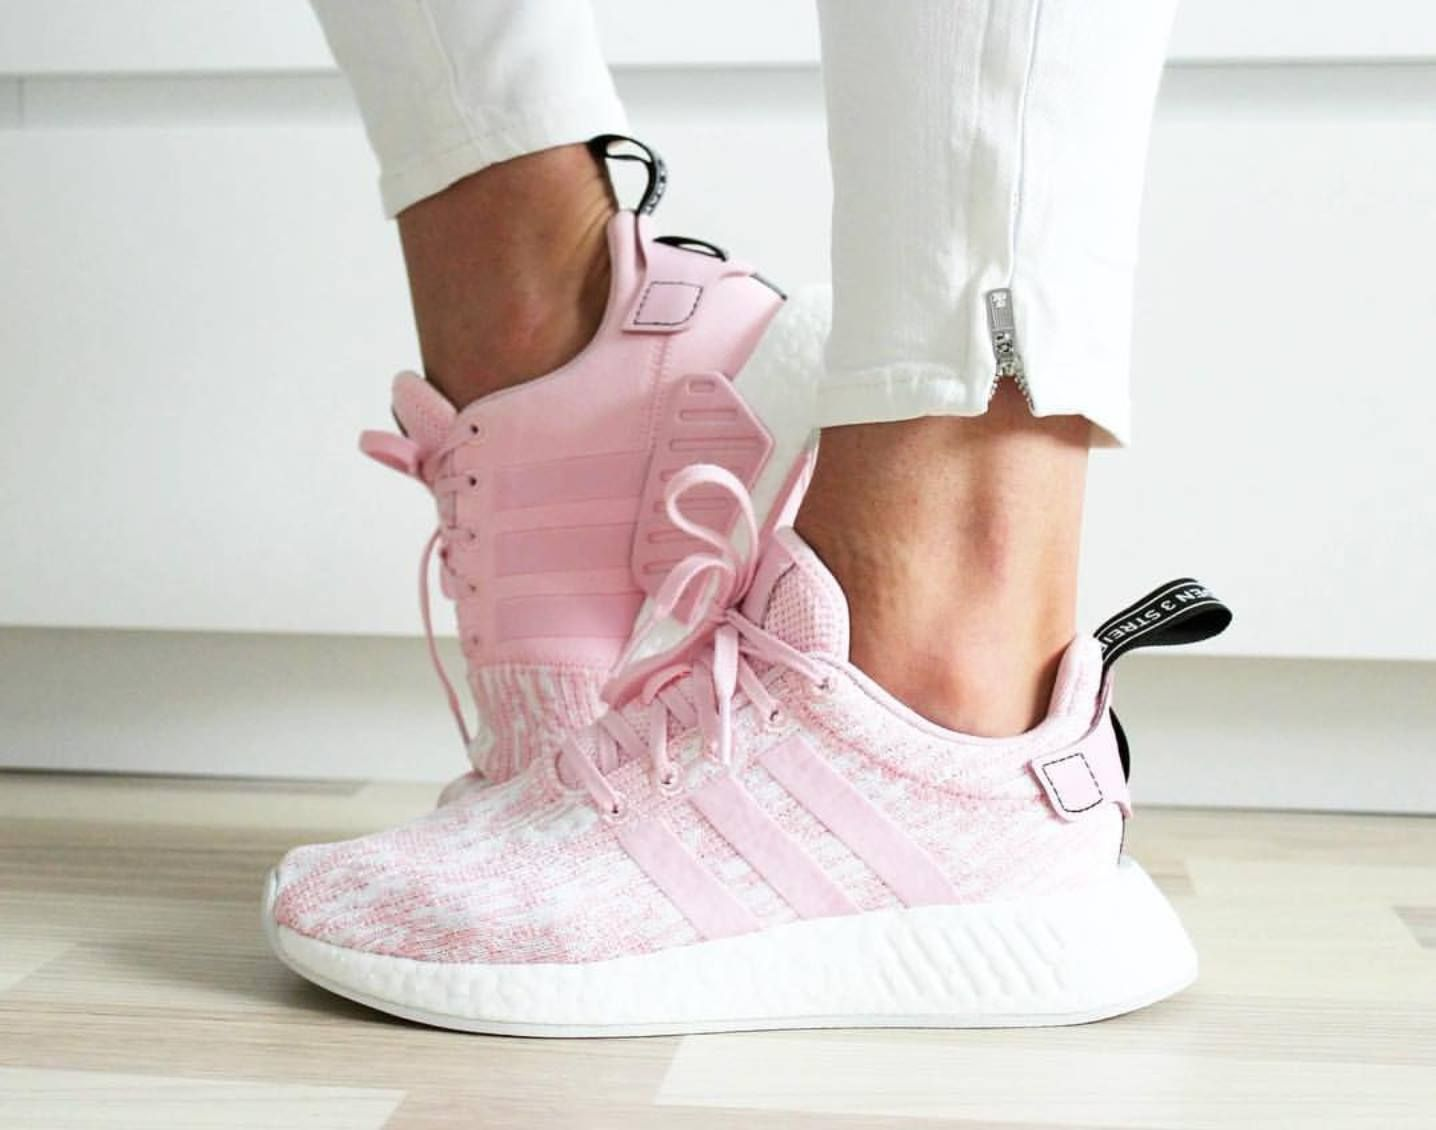 purchase cheap ccbb9 443d5 Adidas NMD pink weiß    Foto von  its.julka  Instagram